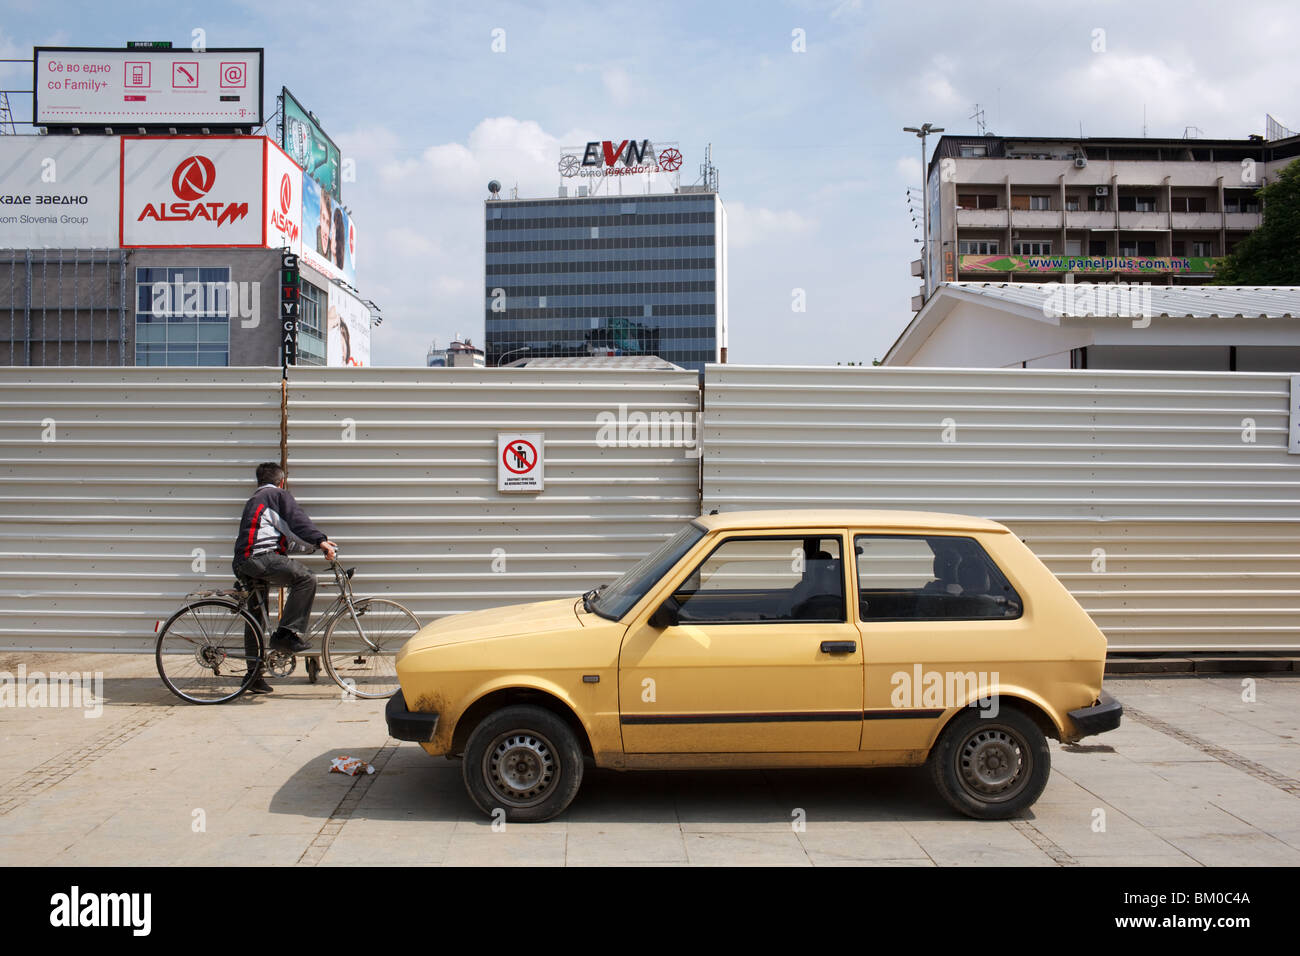 A man on a bicycle and yellow Yugo car parked in central Skopje, Macedonia. - Stock Image